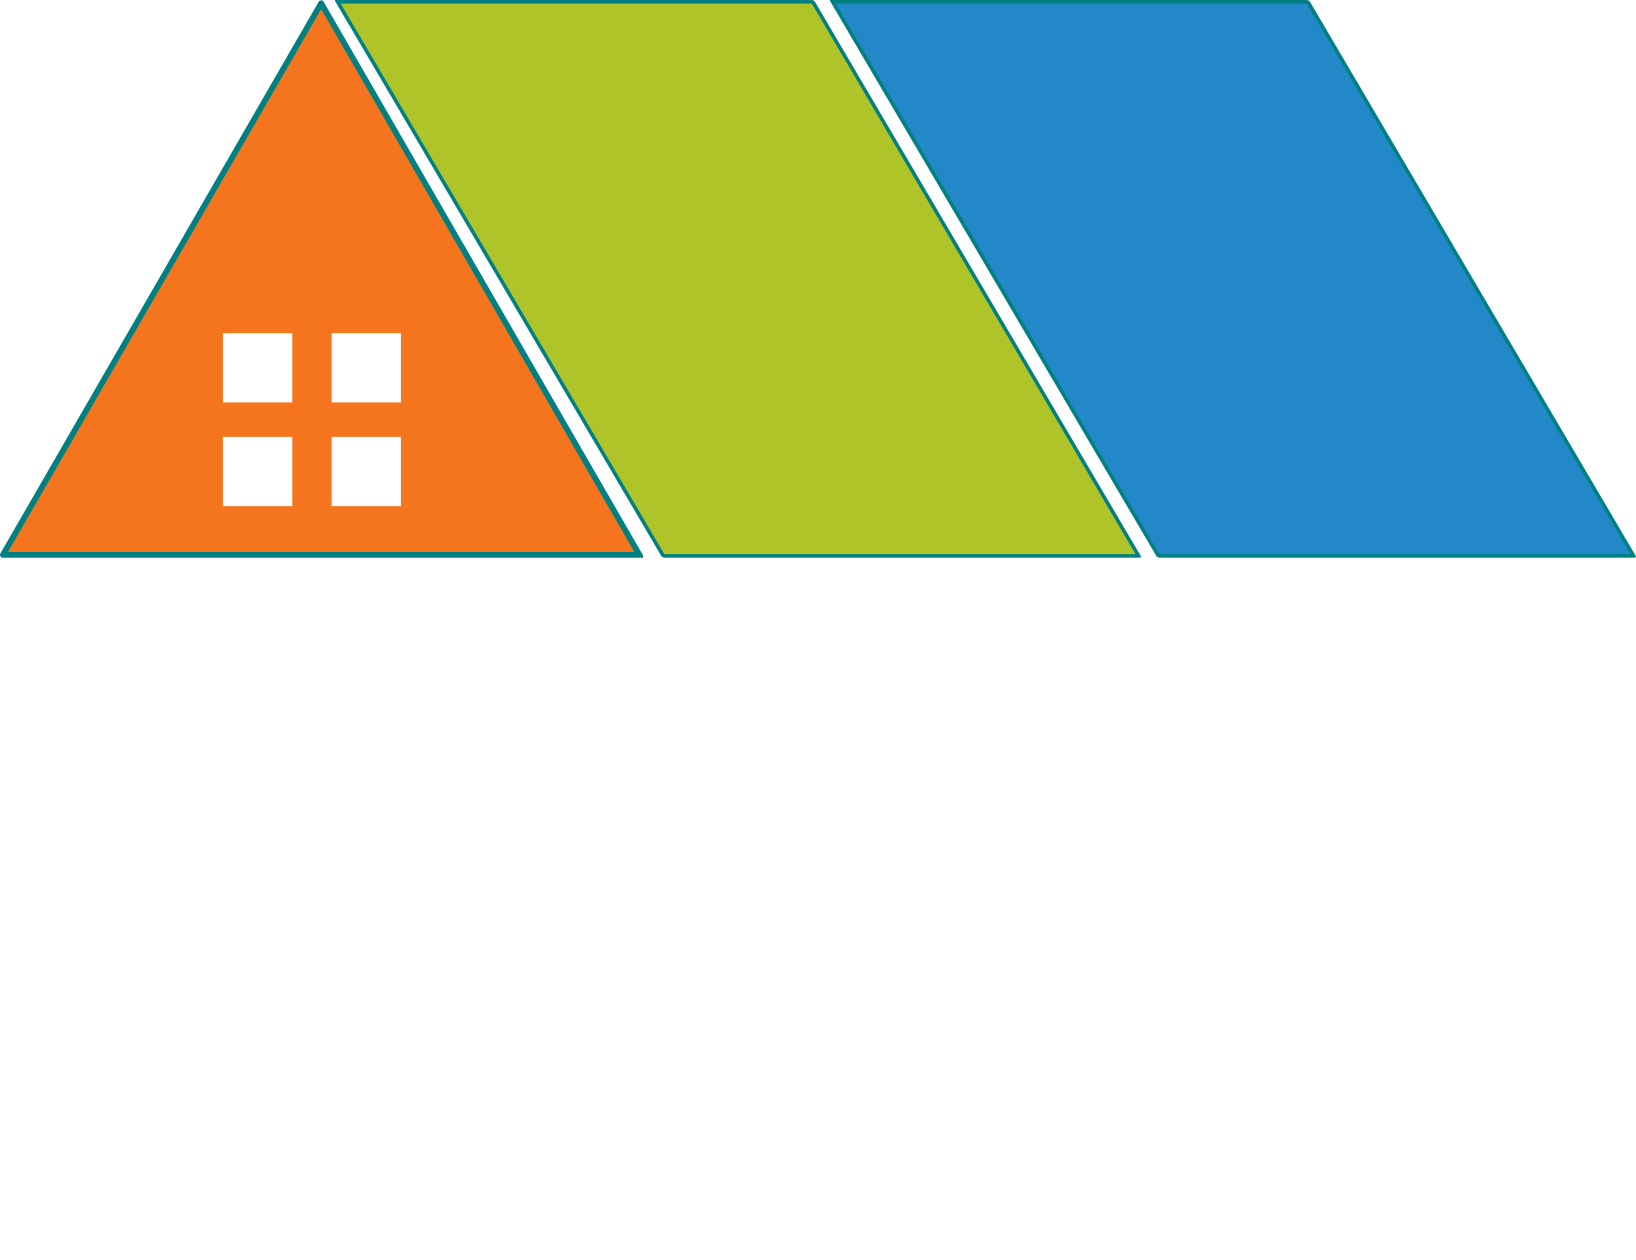 Stanleigh Renovations - Home Renovations in Toronto and the GTA